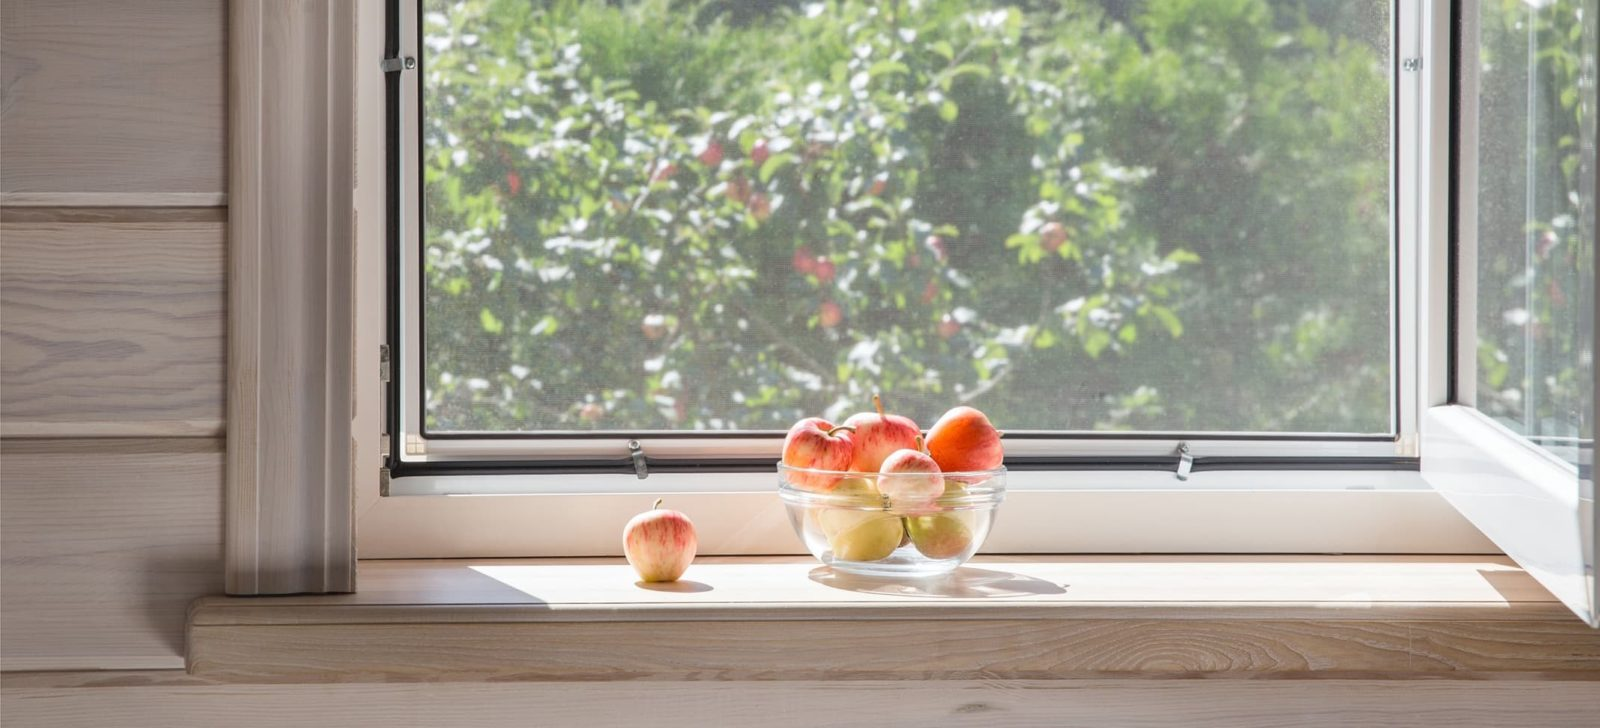 view from a window overlooking a garden, with a bowl of fruit on the windowsill